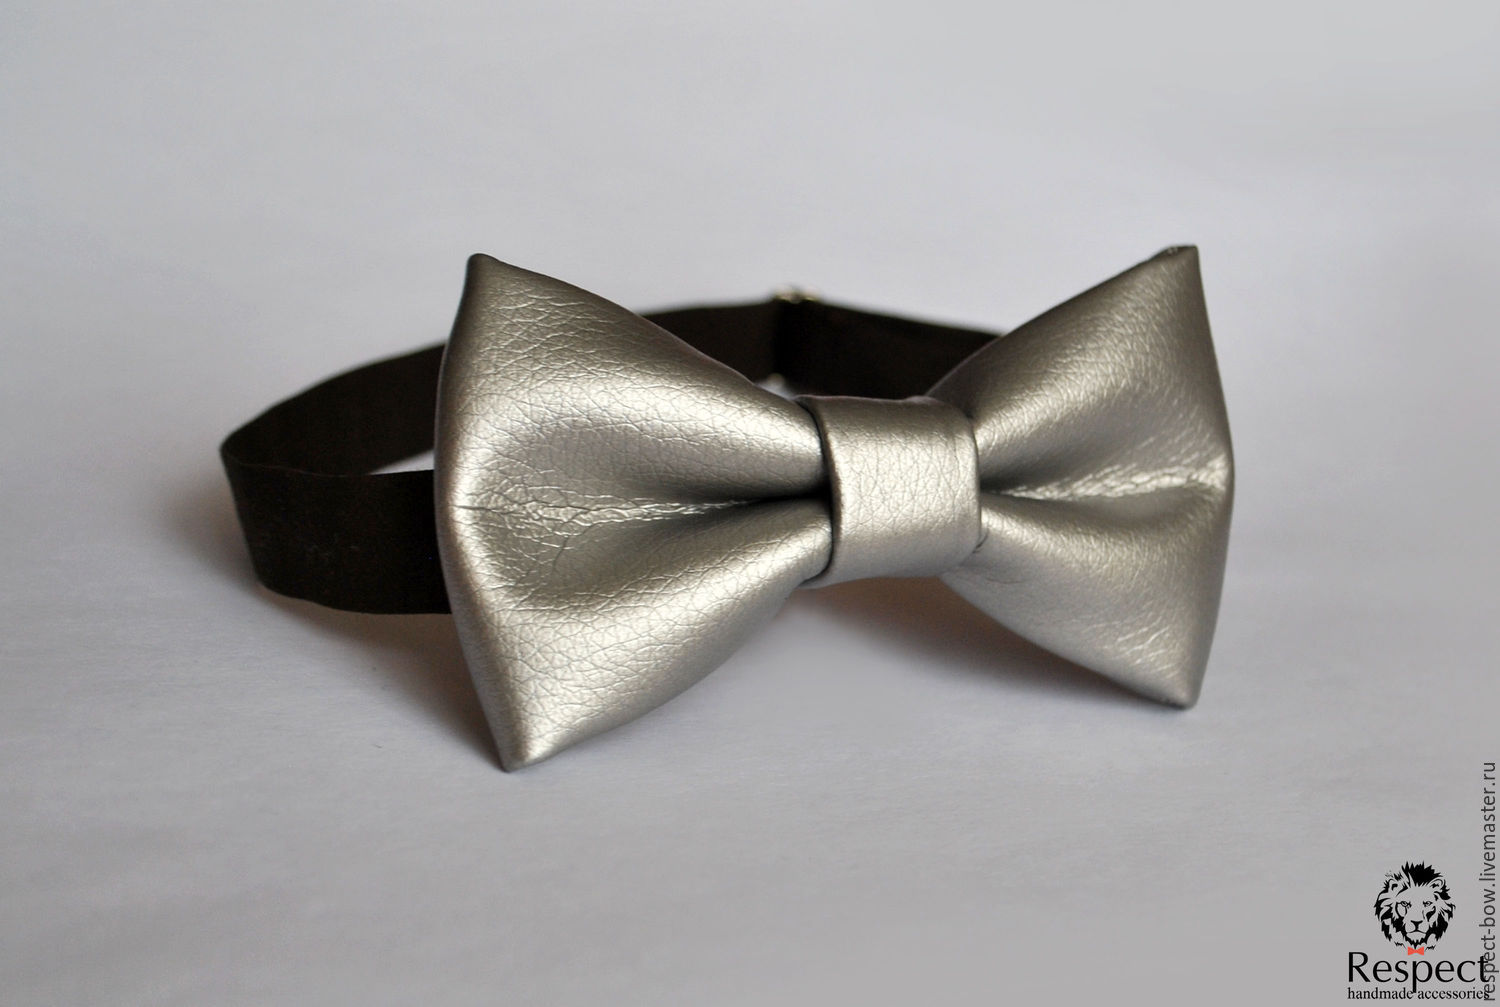 Tie Silver / leather bow tie silver, leatherette, Ties, Moscow,  Фото №1